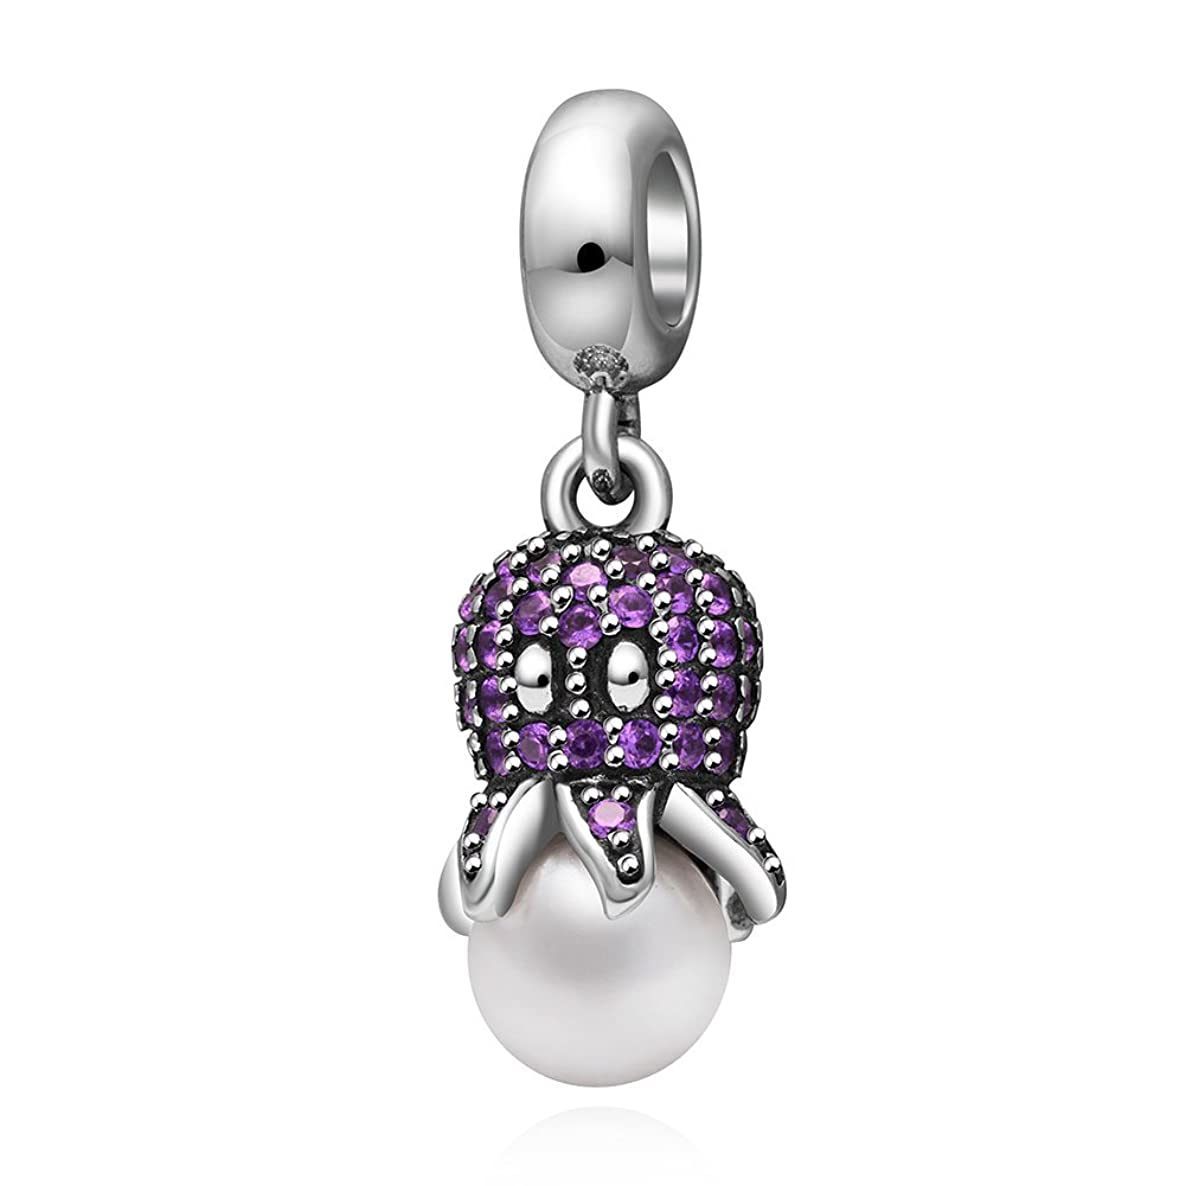 Purple Octopus Dangle Charm 925 Sterling Silver Night Owl Beads fit for DIY Charms Bracelets